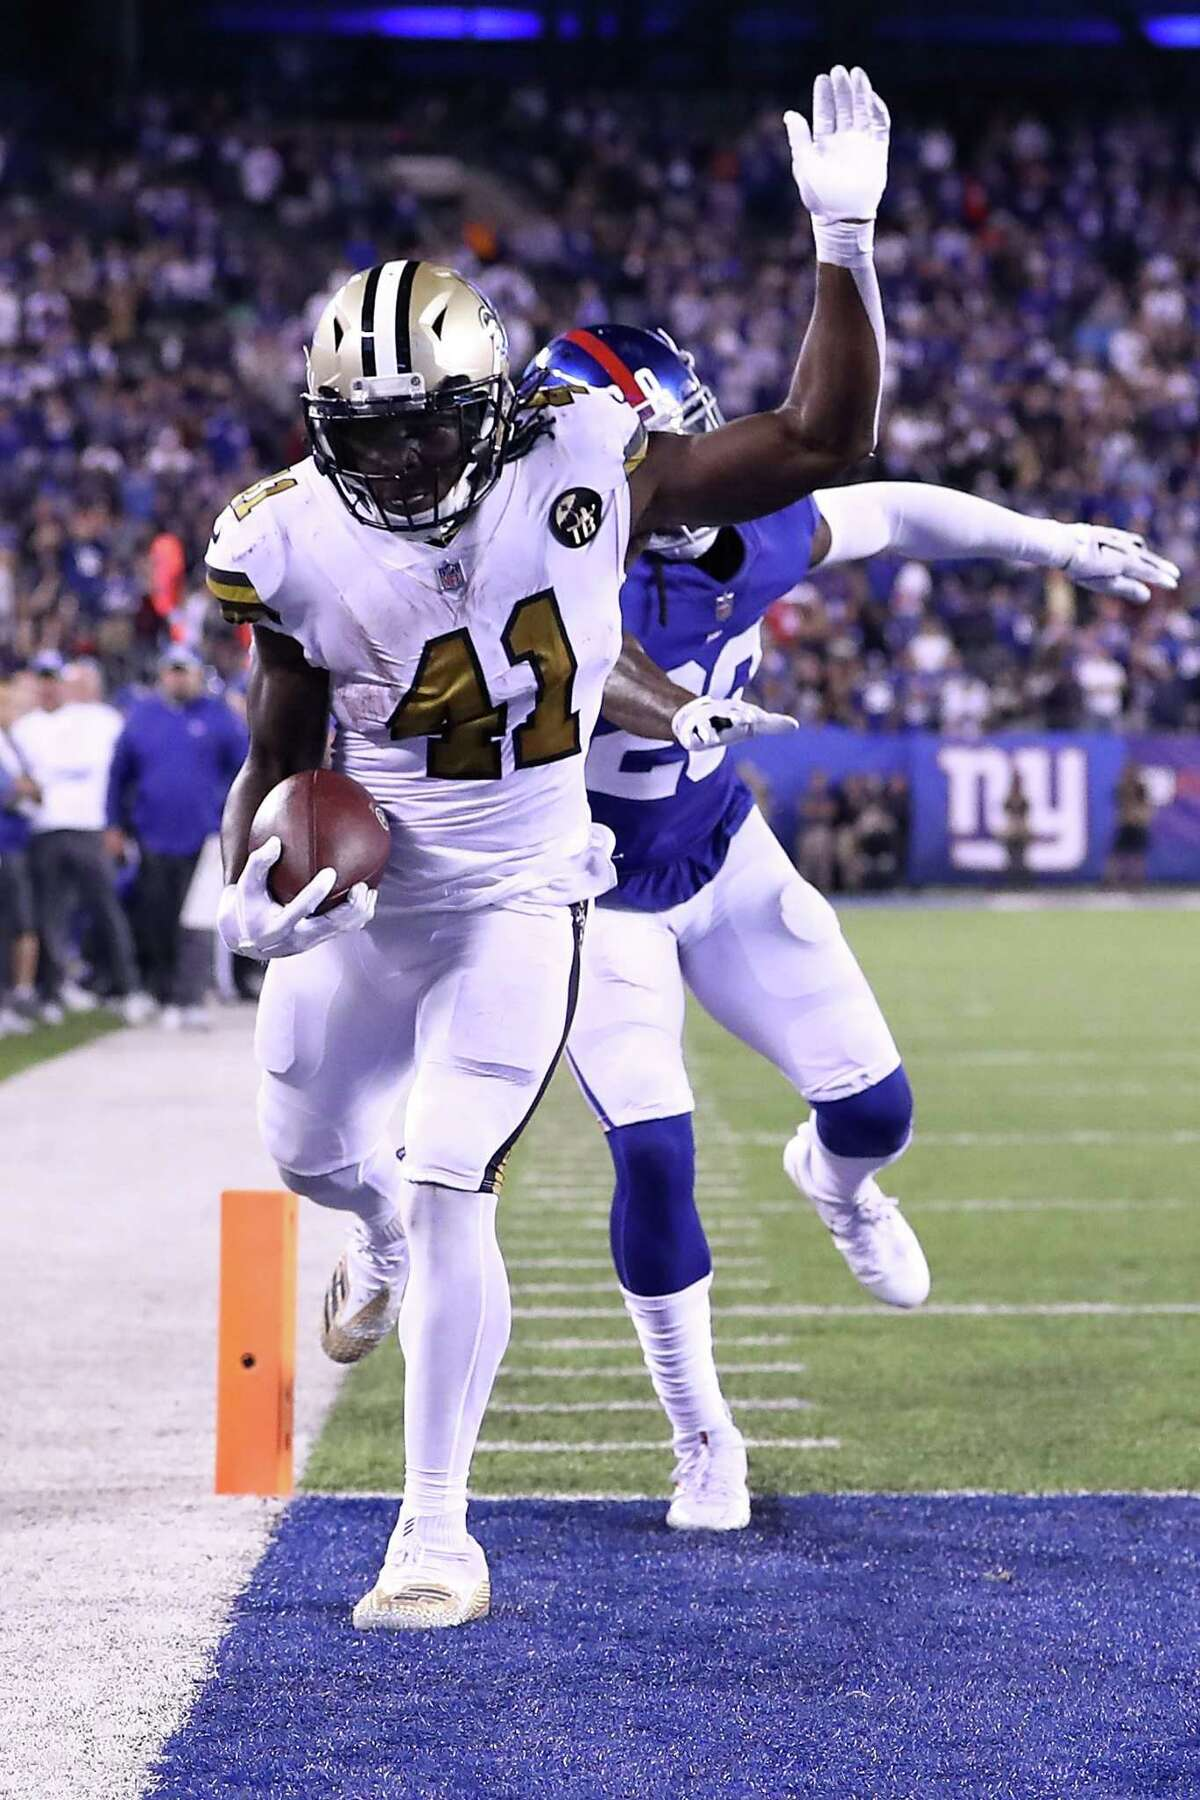 EAST RUTHERFORD, NJ - SEPTEMBER 30: Alvin Kamara #41 of the New Orleans Saints scores a touchdown against the New York Giants during the fourth quarter at MetLife Stadium on September 30, 2018 in East Rutherford, New Jersey. (Photo by Al Bello/Getty Images)